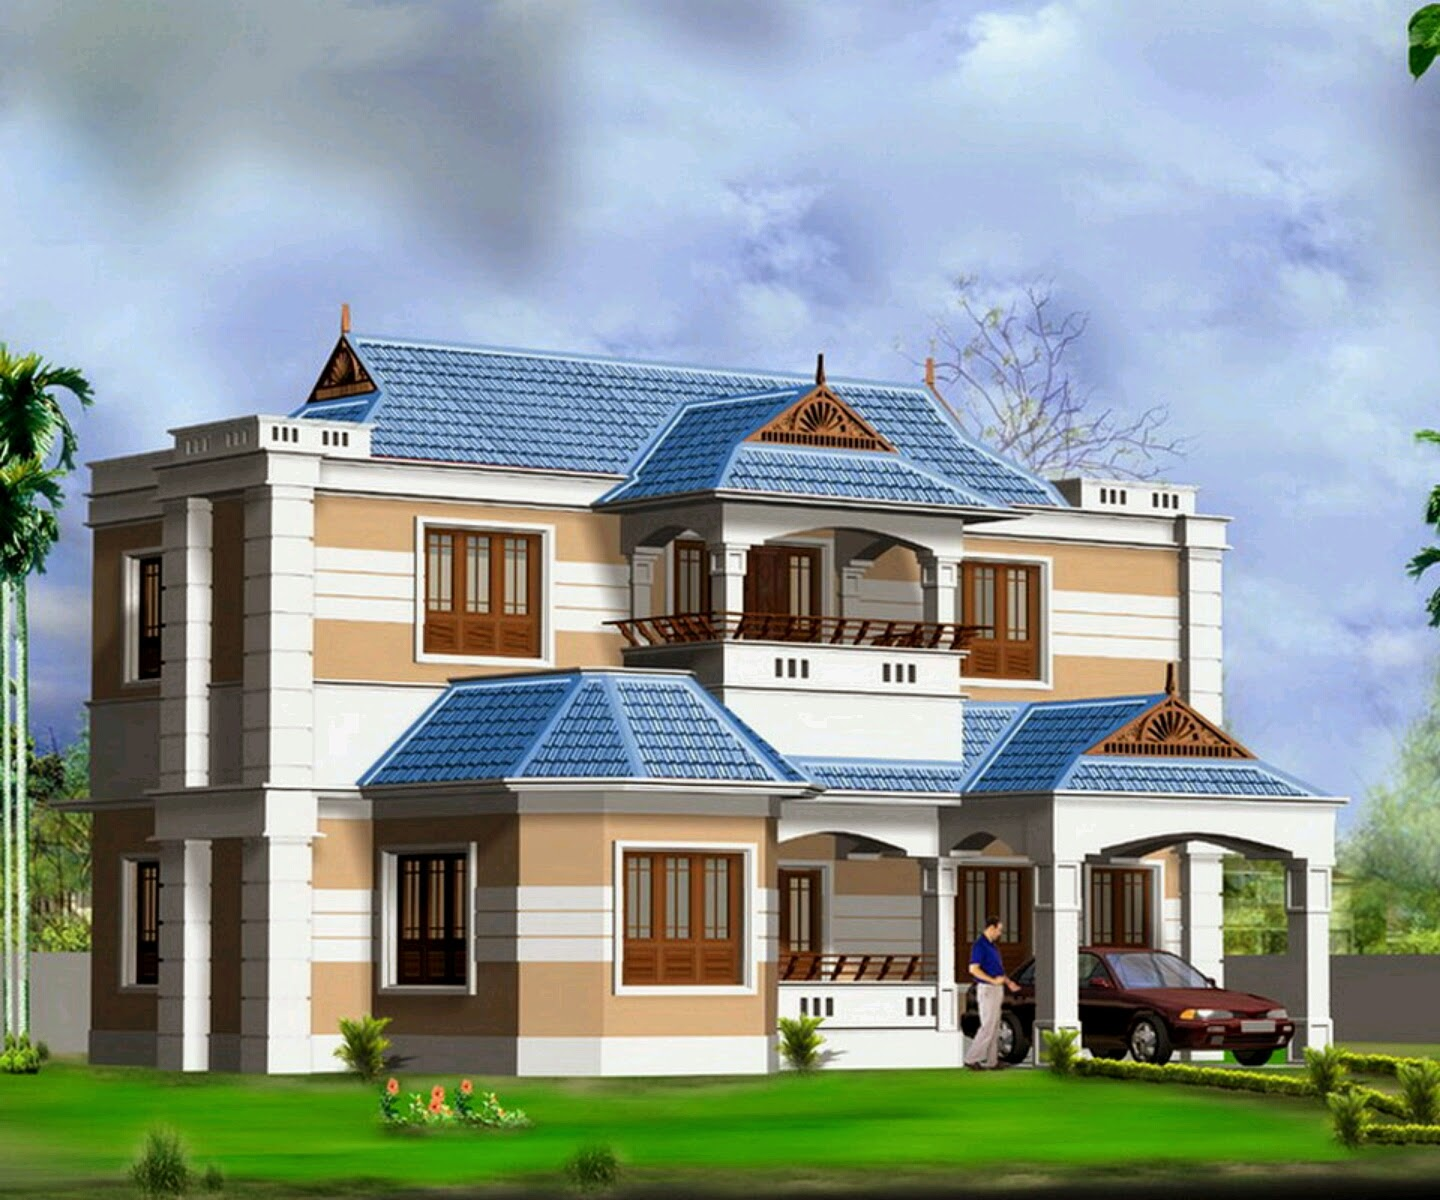 3d home architect landscape free download drynedra for 3d home architect